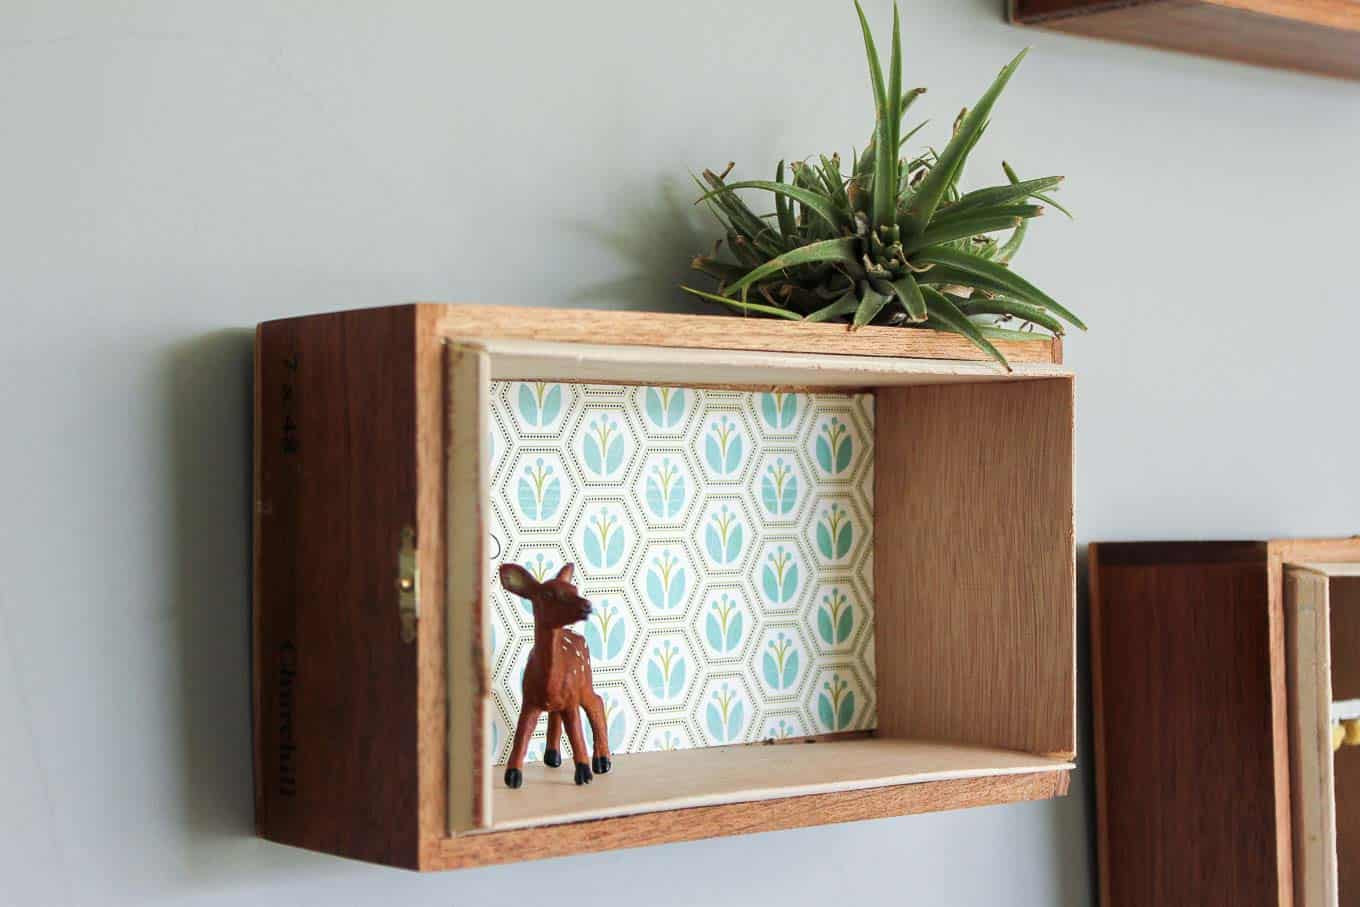 Cigar box trinket storage shelf